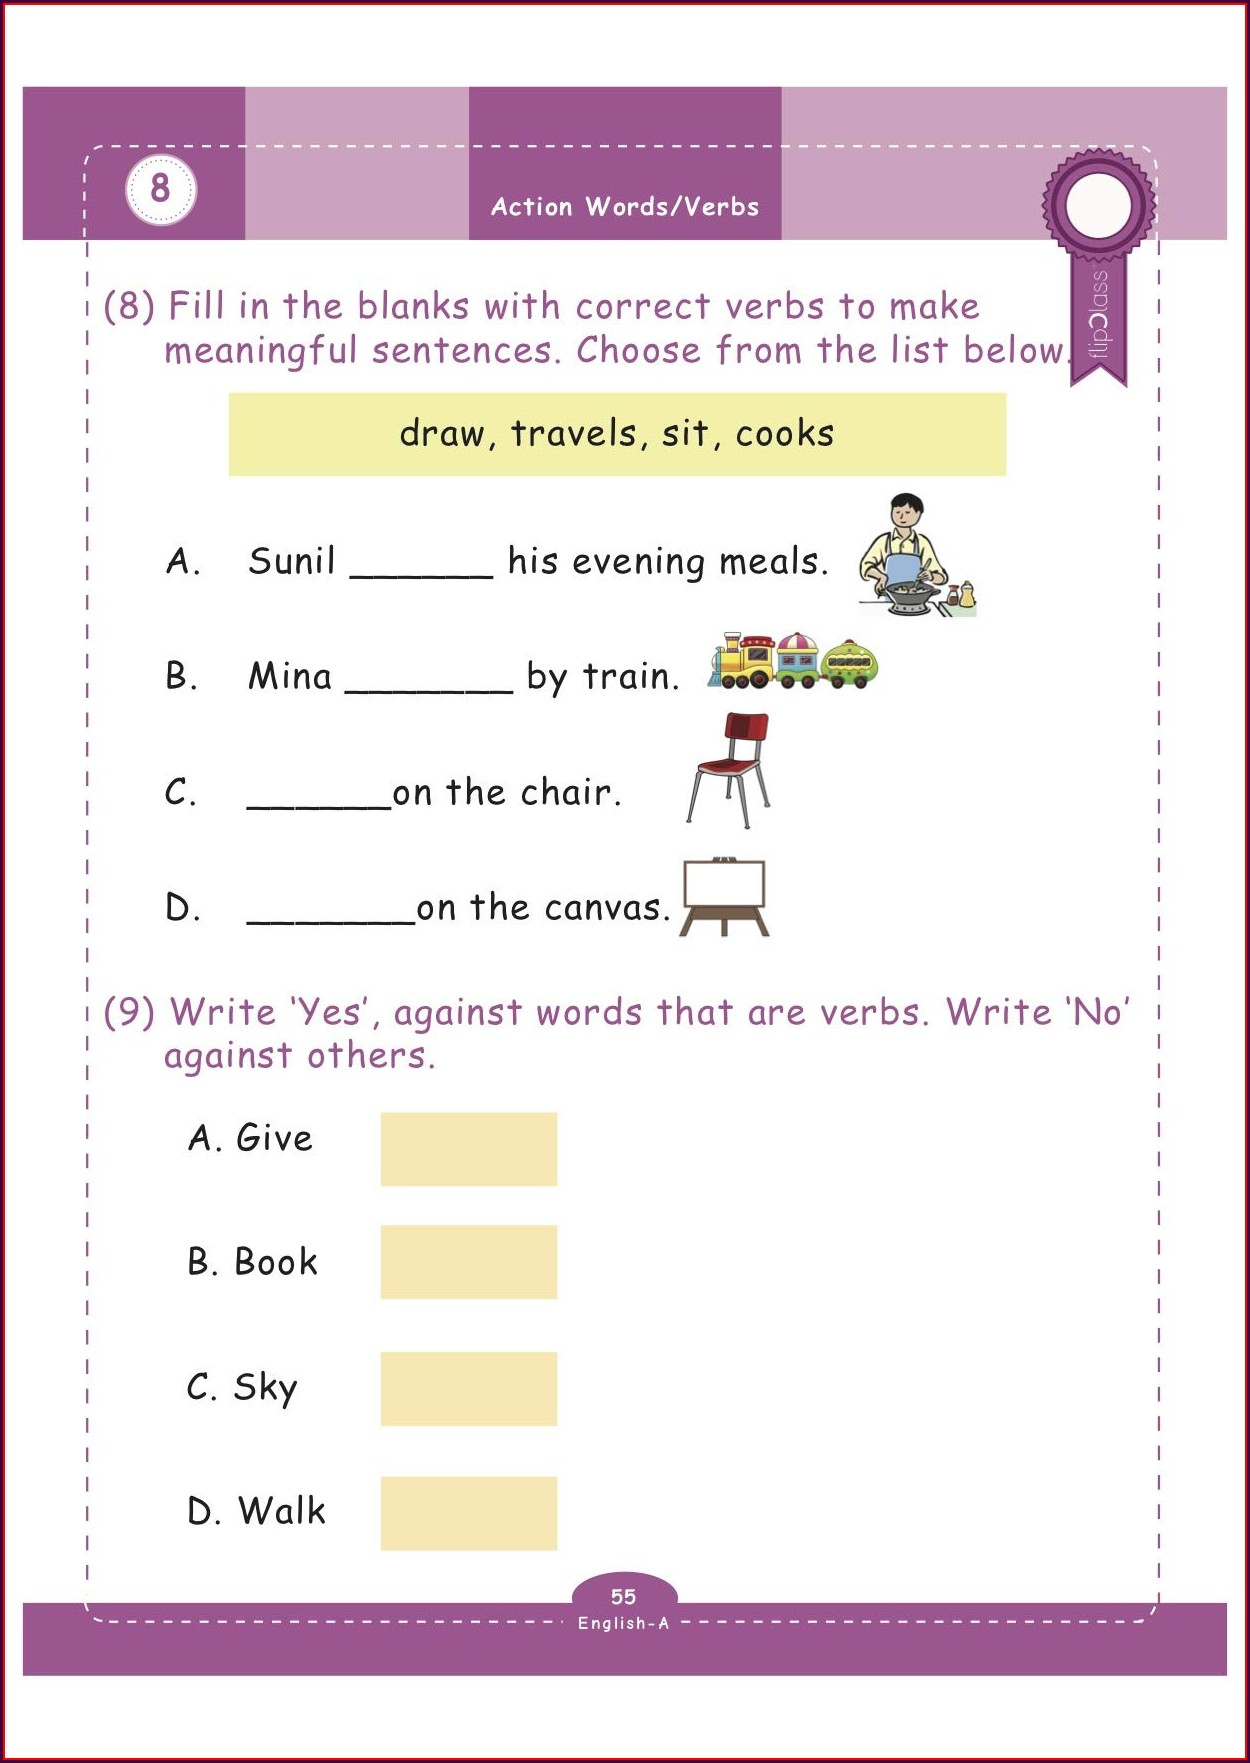 Grade 1 Class One English Worksheets